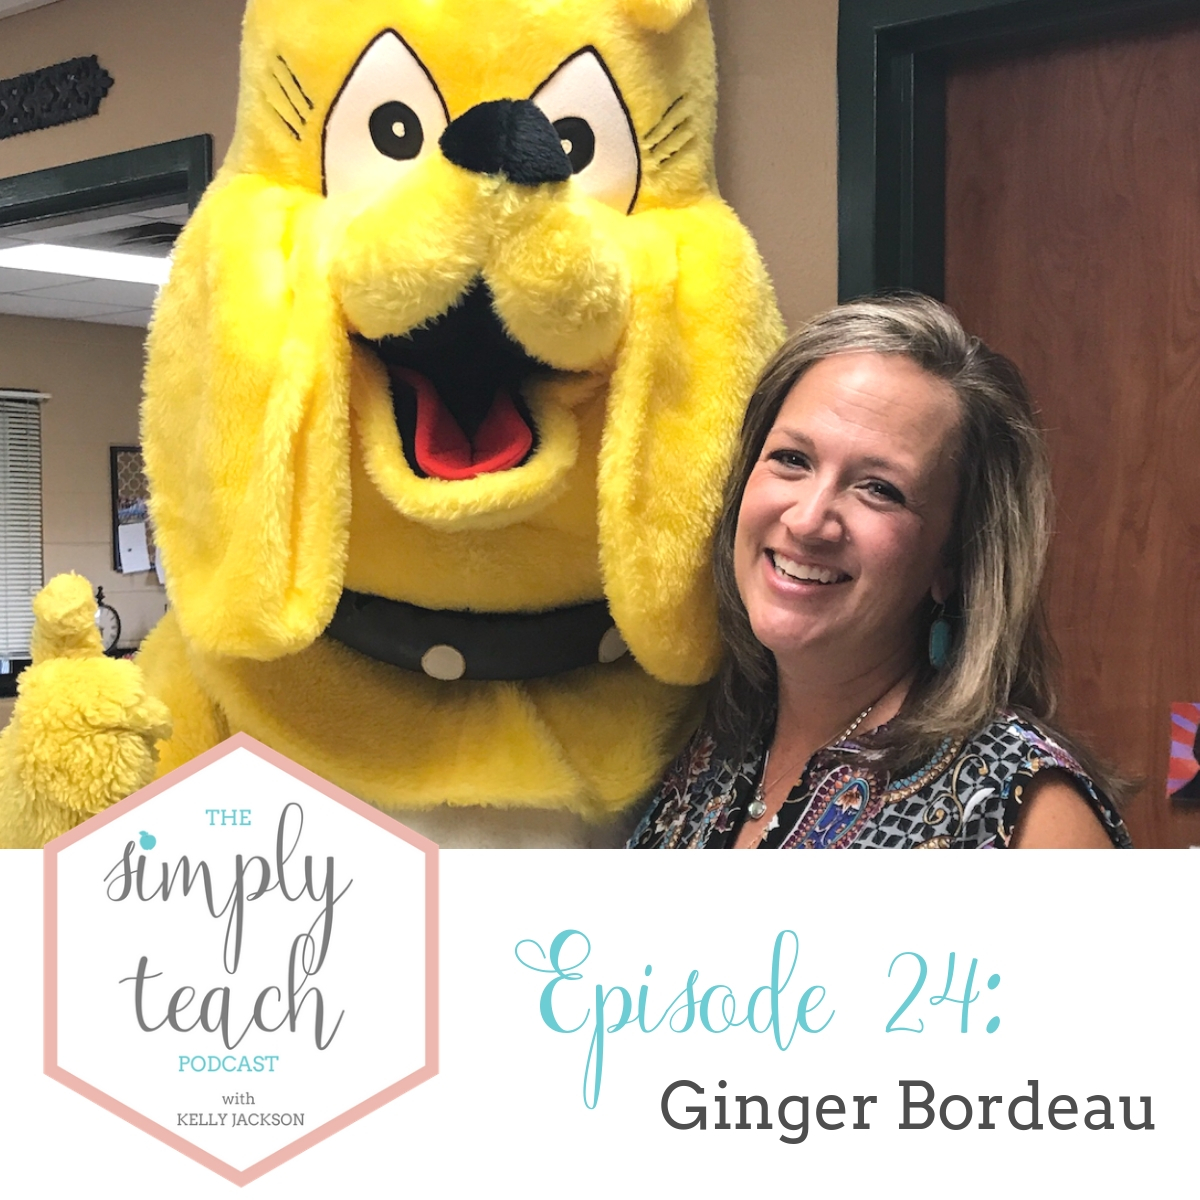 Higher Level Questioning, Asking the right questions, first year teacher interview tips, the importance of routines in your classroom, celebrating holidays in your classroom. This just scratches the surface of all the things we talked about on today's podcast episode of Simply Teach!